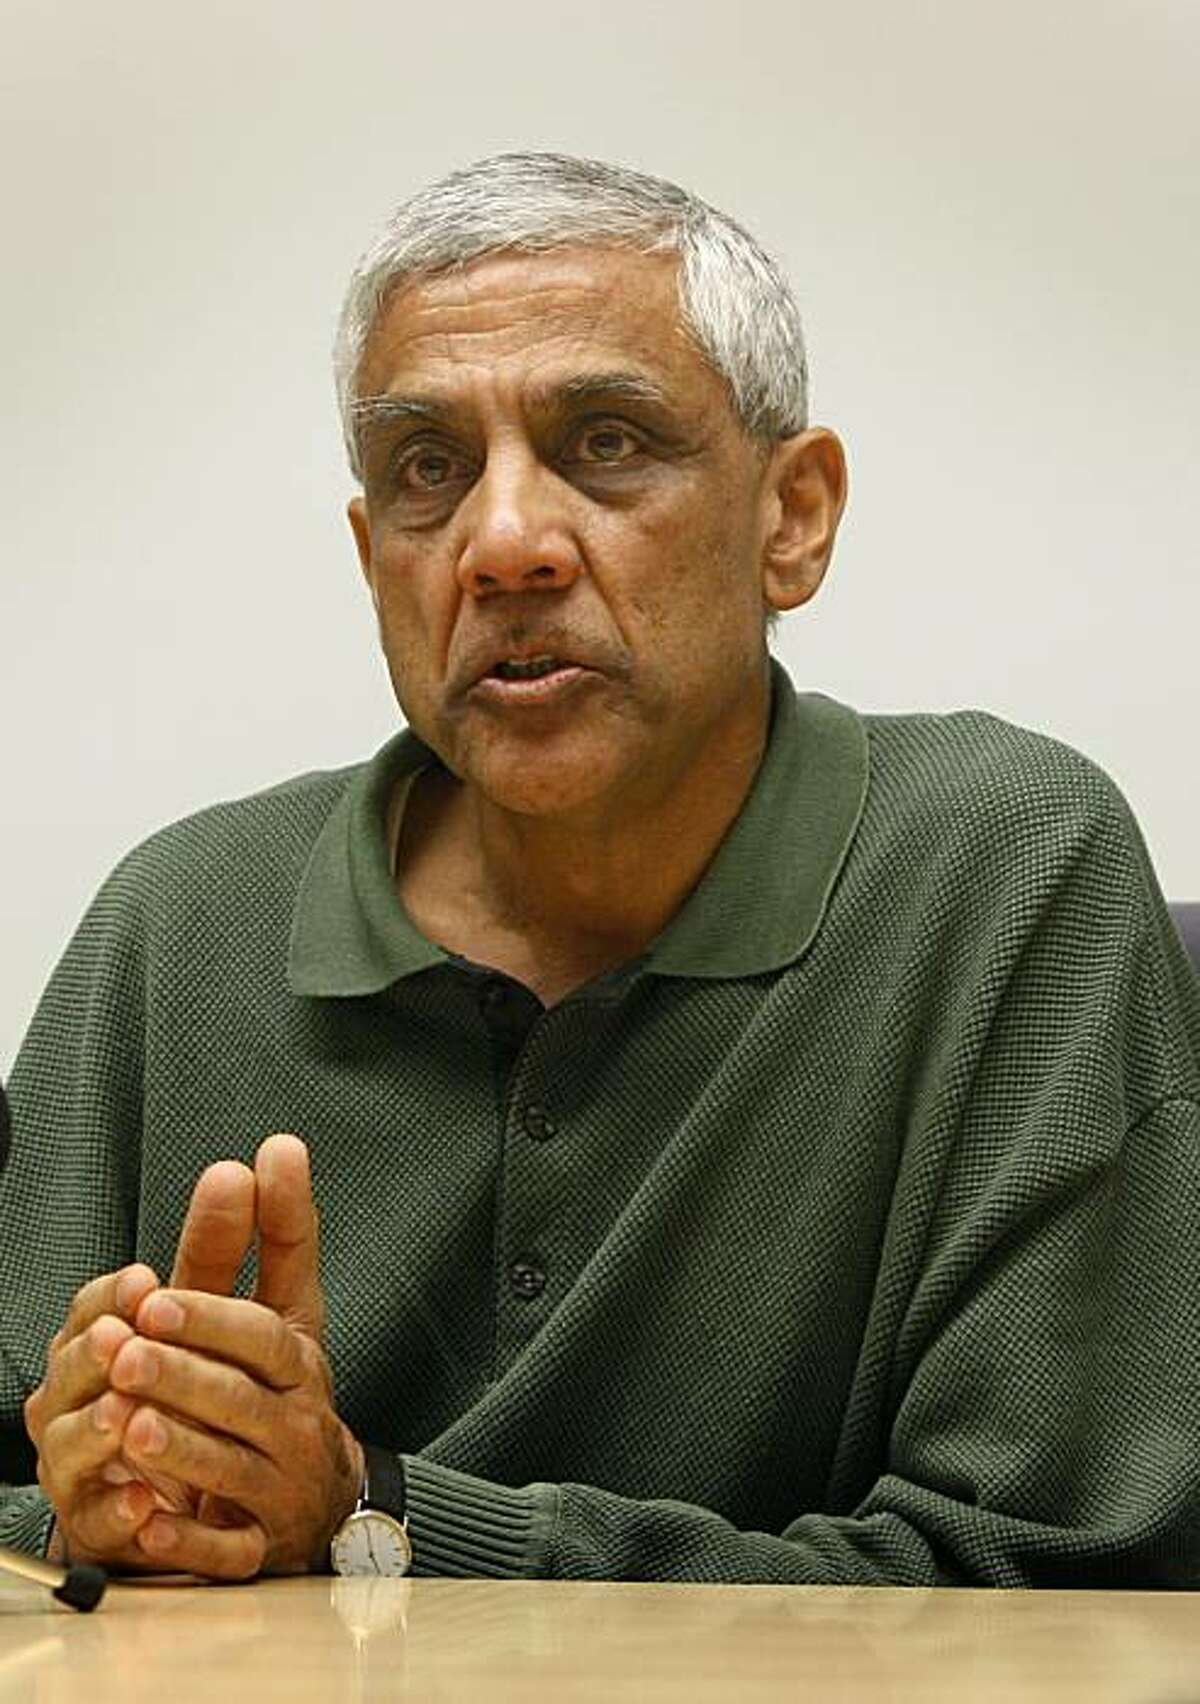 Venture capitalist Vinod Khosla discusses green technology and biofuels at his firm's office in Menlo Park, Calif., on Wednesday, April 23, 2008. Photo by Paul Chinn / San Francisco Chronicle